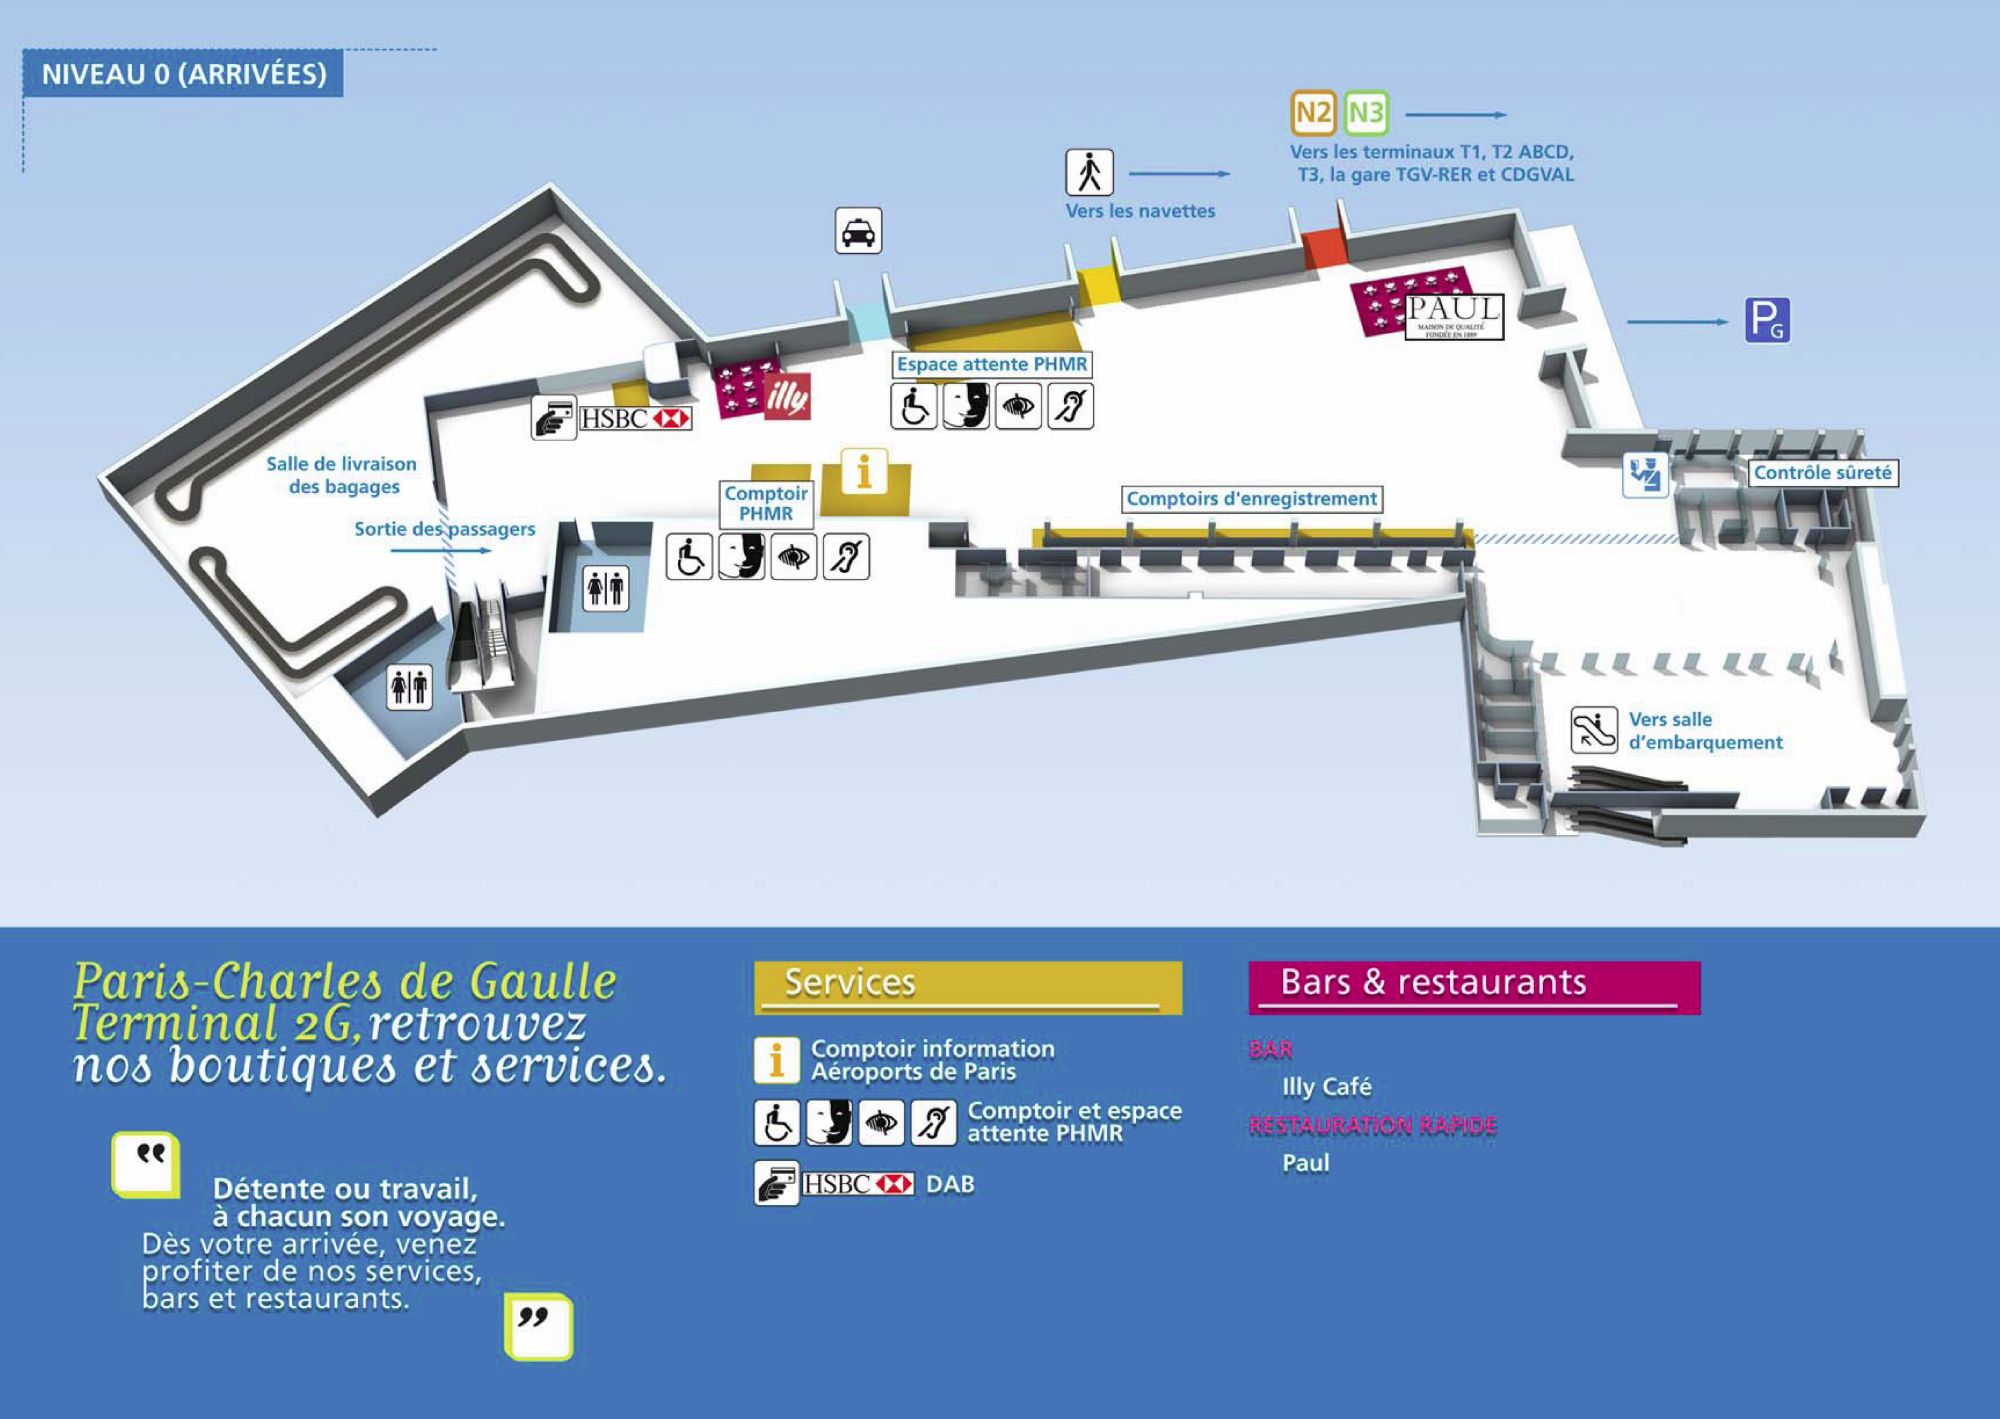 Charles de gaulle terminal 2g map arrival 236 kb